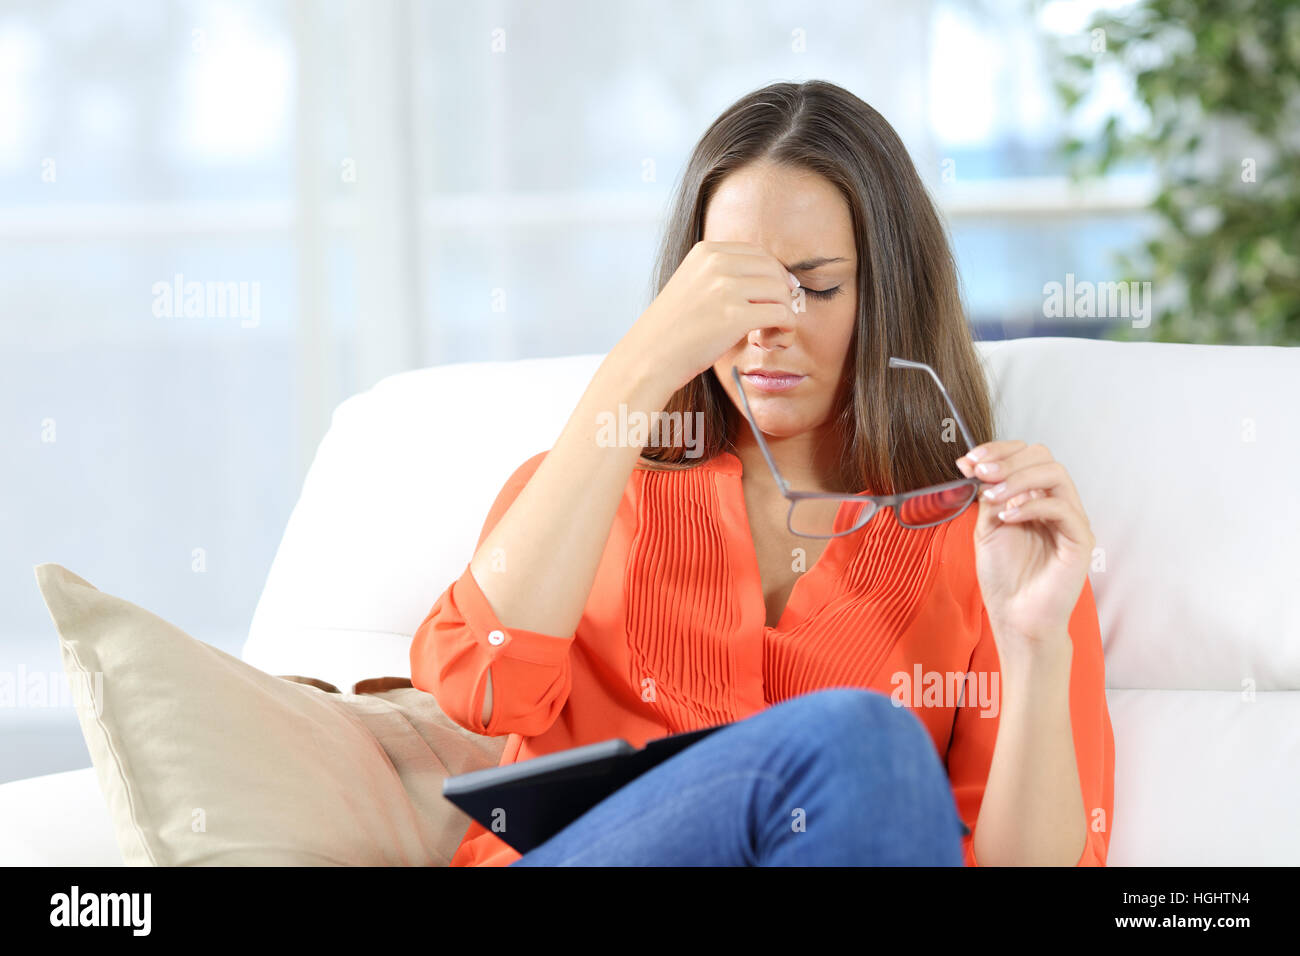 Woman with glasses suffering eyestrain after reading an ebook sitting on a couch at home - Stock Image